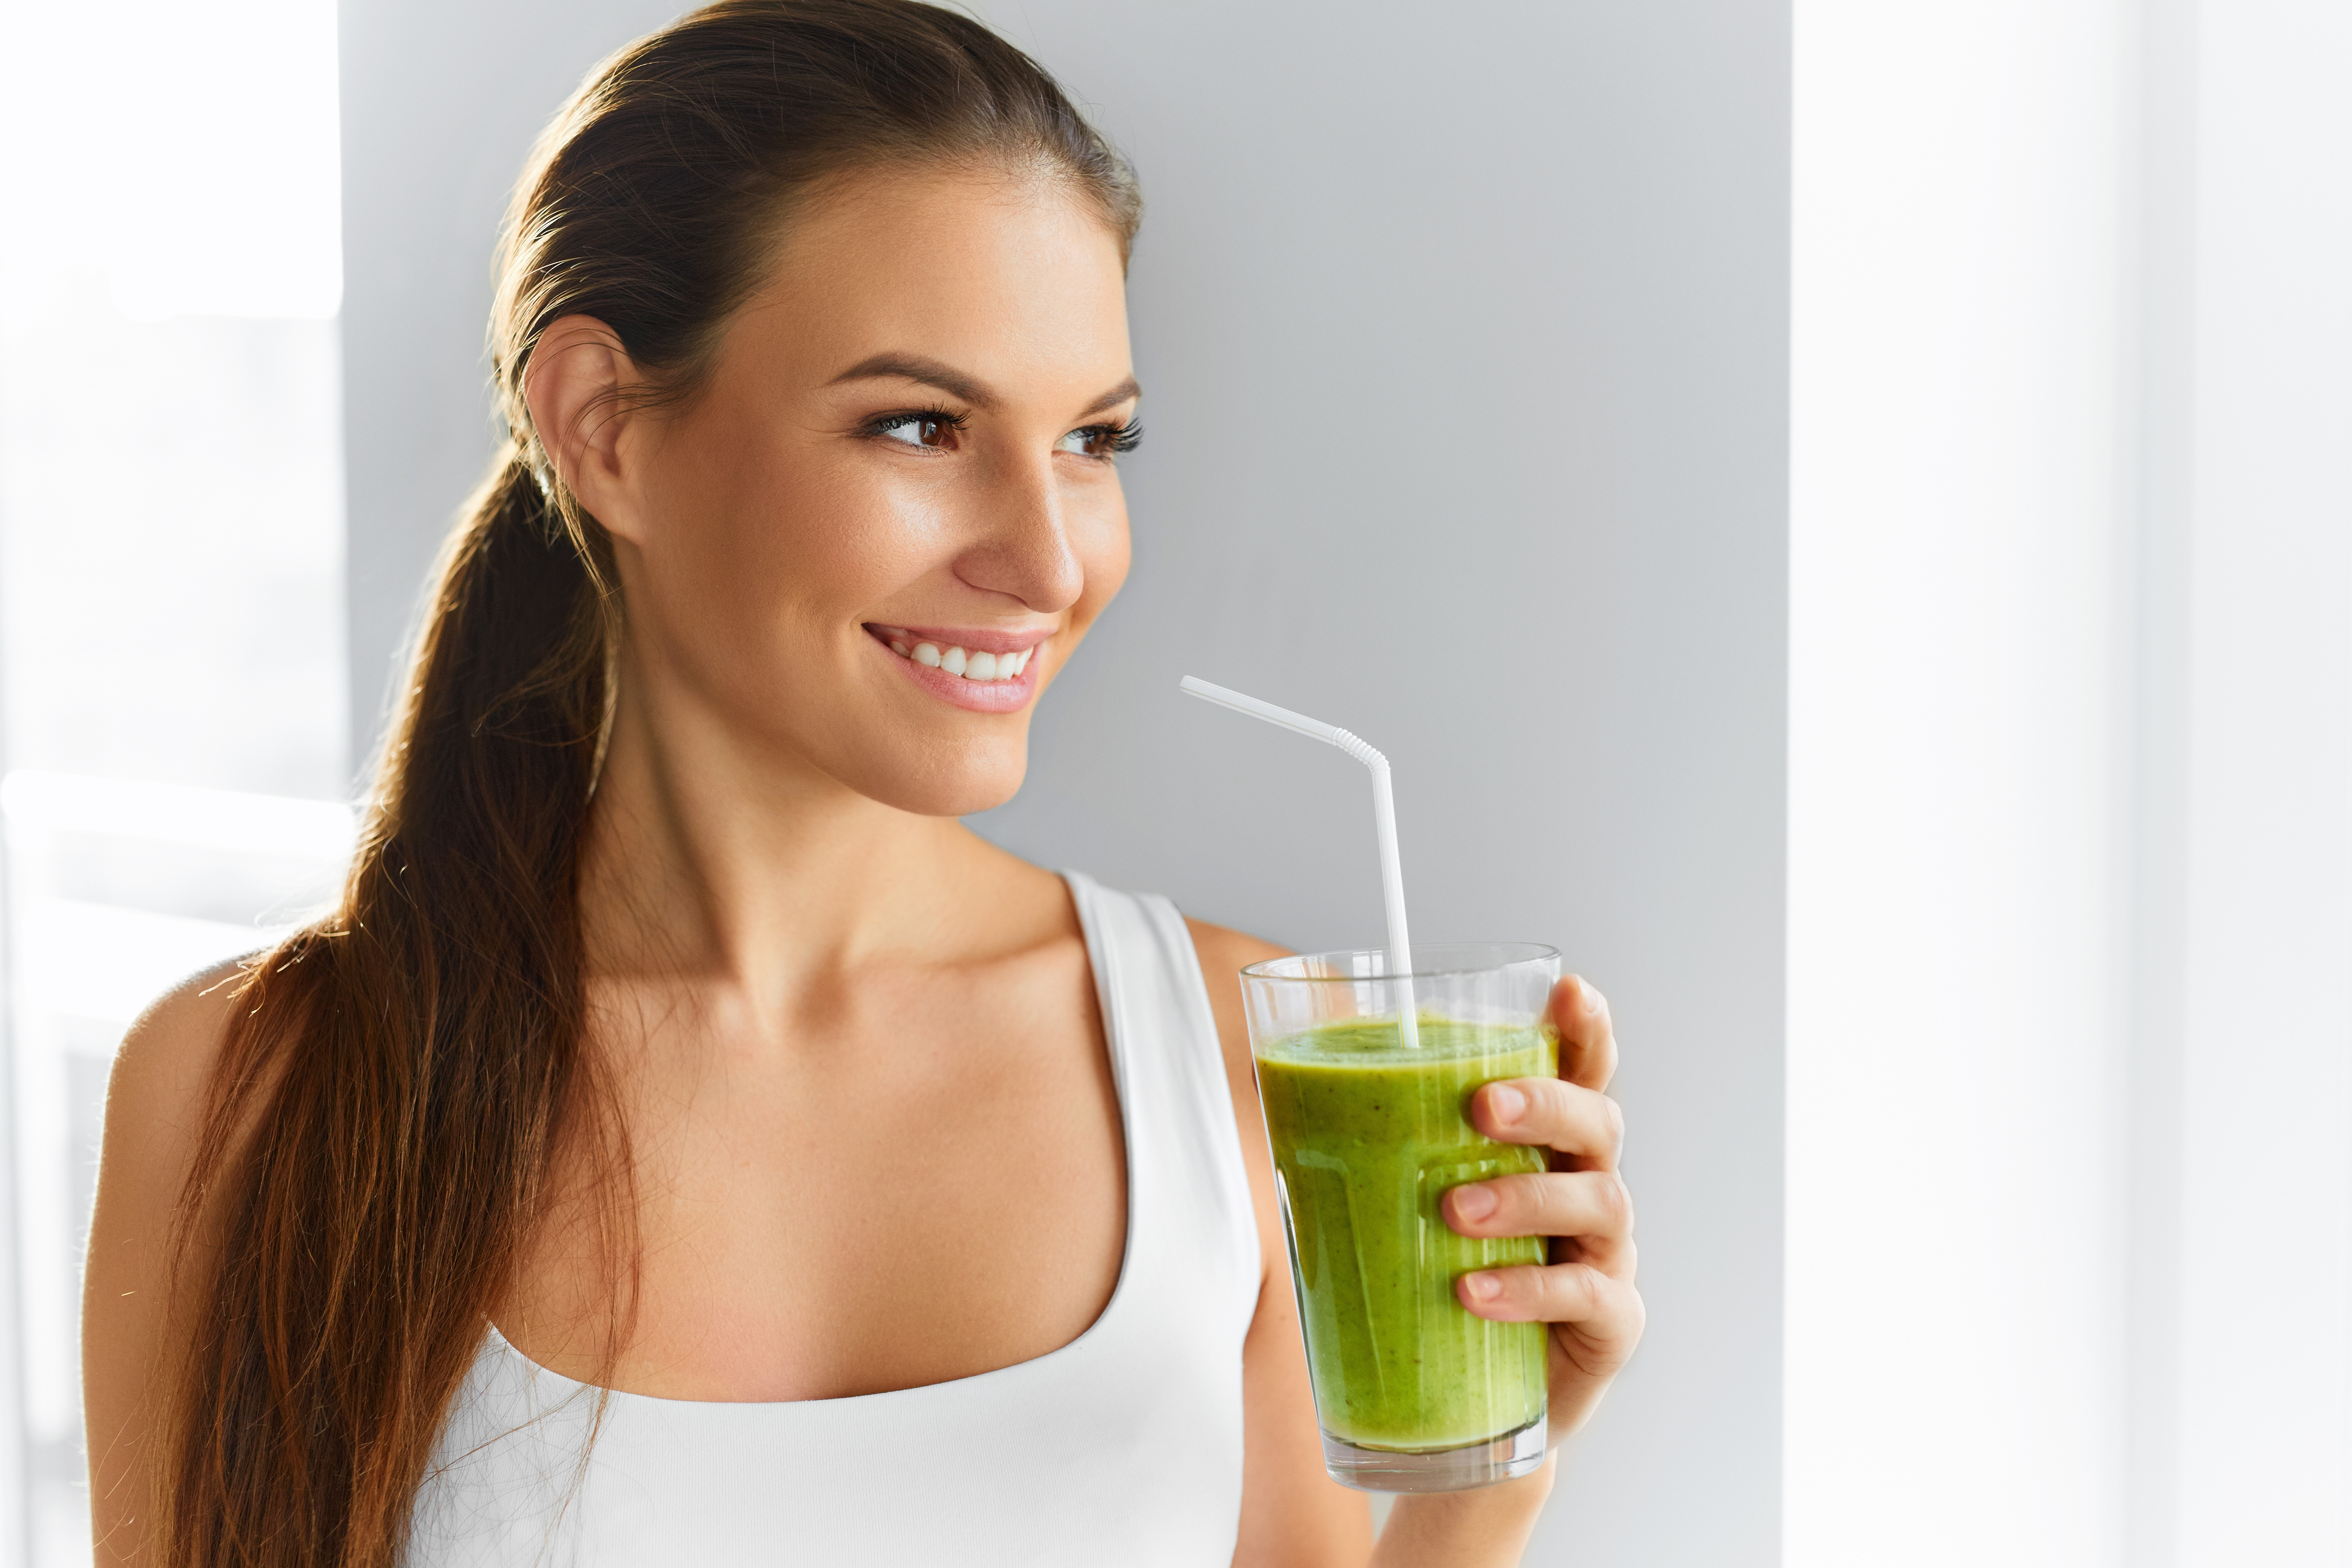 TYPES OF DETOX PROGRAMS AT THE LIFECO AND THEIR BENEFITS